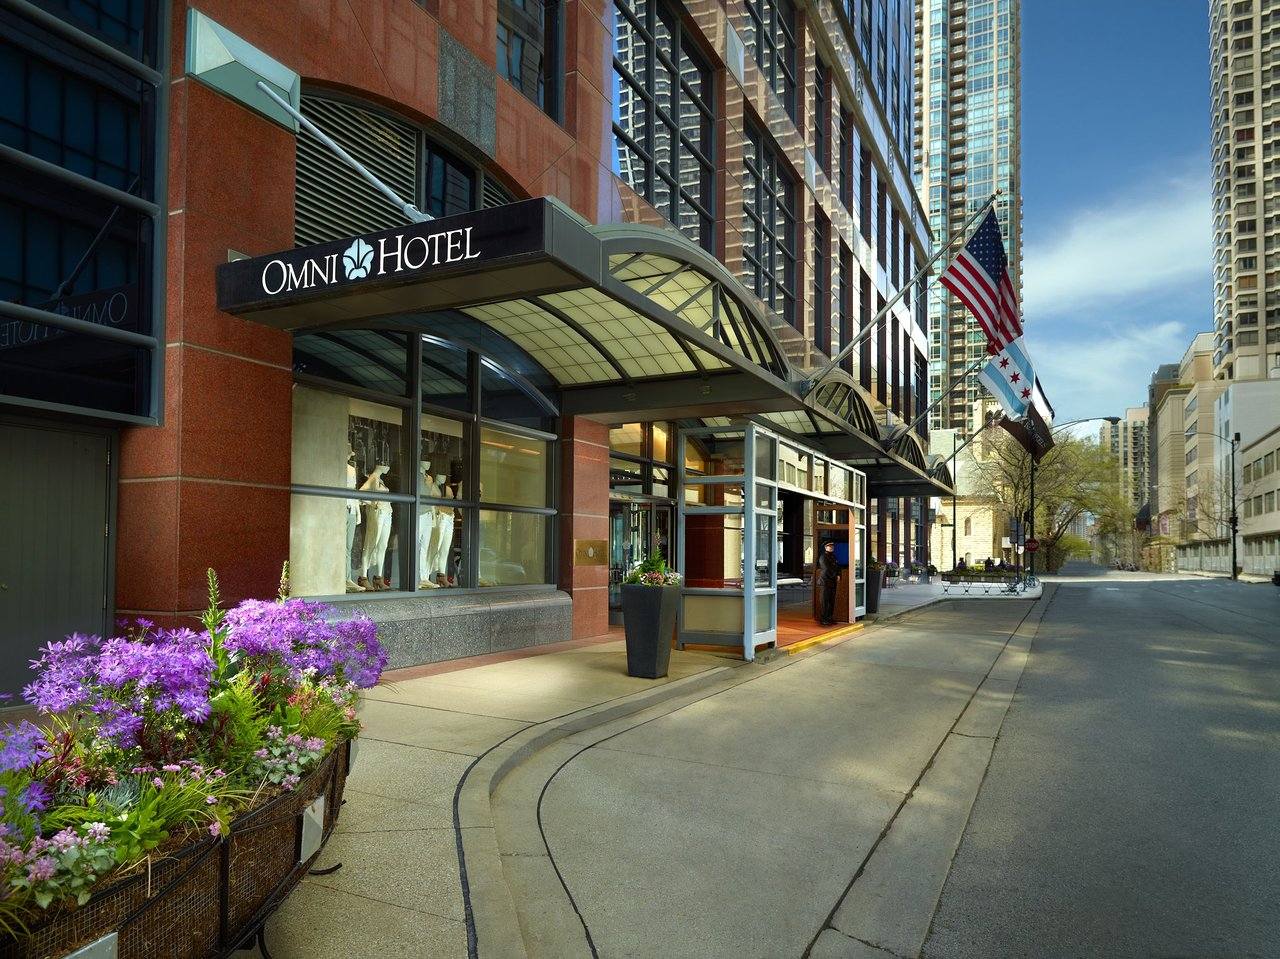 THE 10 CLOSEST Hotels to The Magnificent Mile, Chicago ... Magnificent Mile Hotels Map on magnificent mile shopping, chicago hotel map, midtown atlanta hotel map, magnificent mile parking, magnificent mile things to do, nashville hotel map, magnificent mile real estate, orlando hotel map, mag mile map, georgetown hotel map, illinois hotel map, magnificent mile restaurants, magnificent mile dining, ginza hotel map, belize hotel map, magnificent mile attractions, michigan avenue hotel map, beacon hill hotel map, edgewater hotel map,